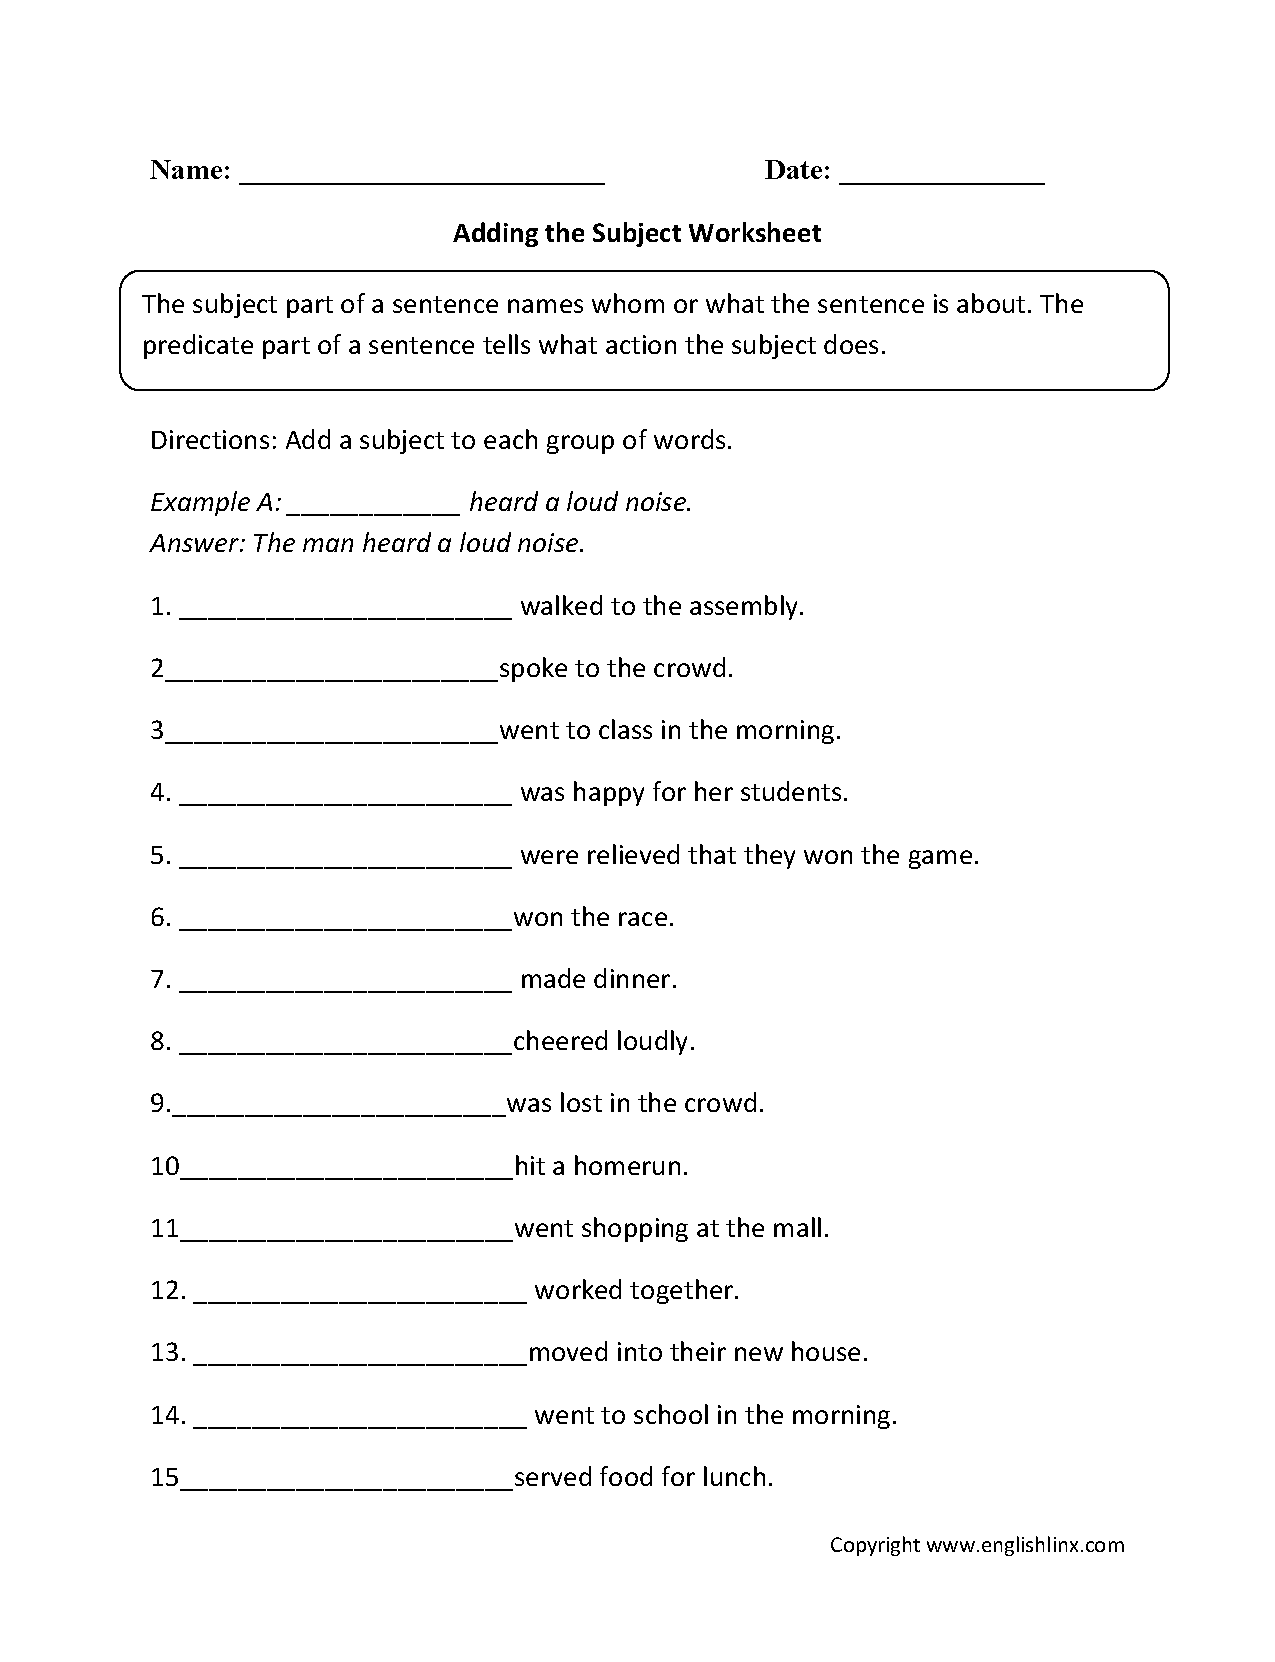 Worksheets Subject Predicate Worksheets 3rd Grade englishlinx com subject and predicate worksheets adding a worksheet